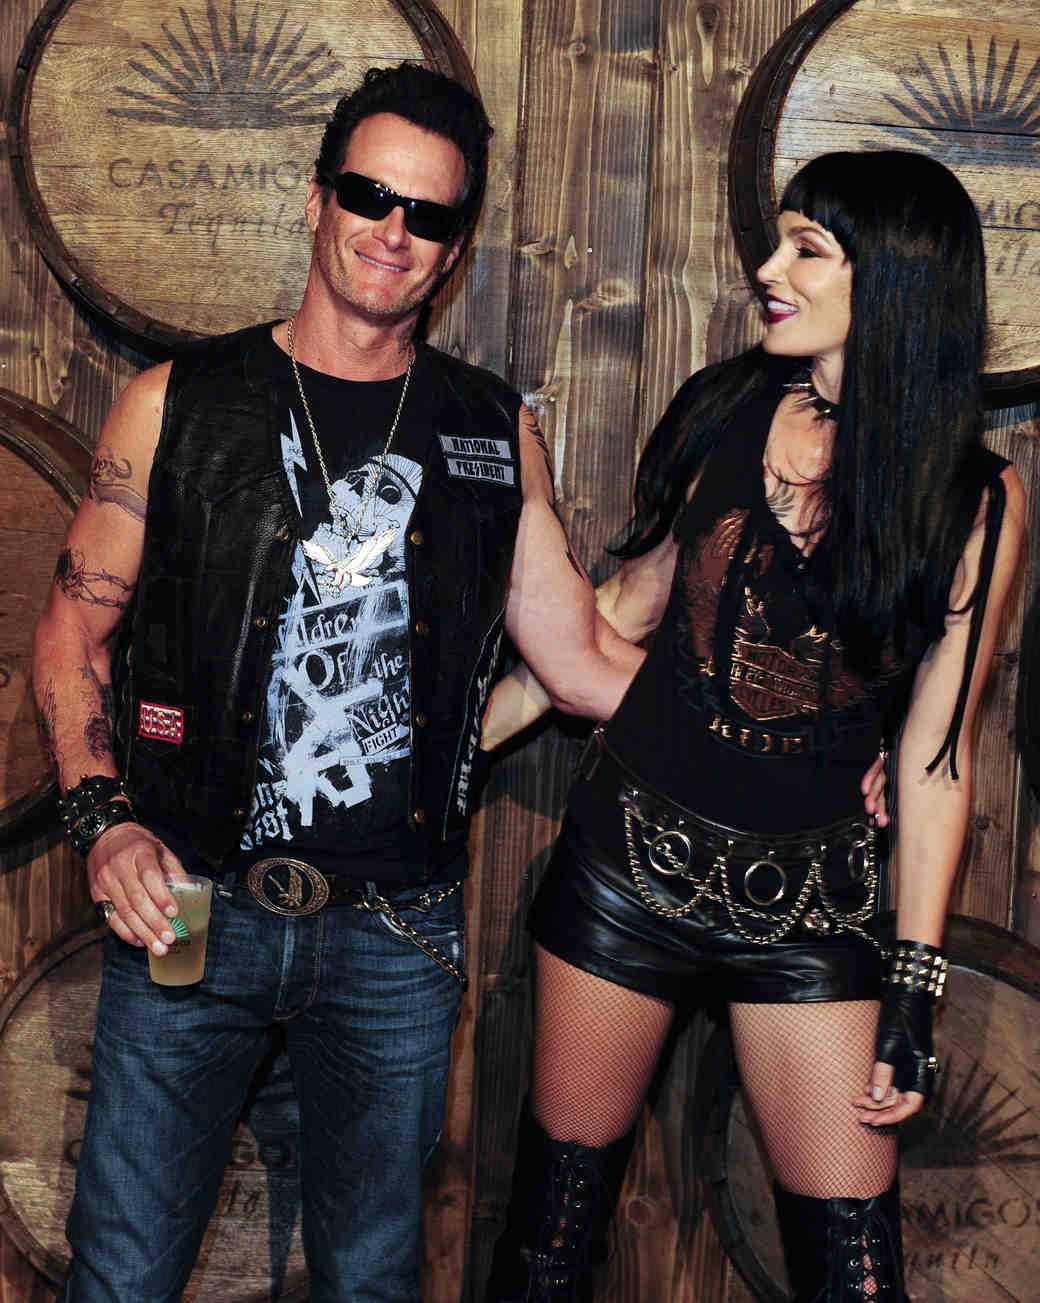 Cindy Crawford and Rande Gerber in Hells Angels Halloween Costumes